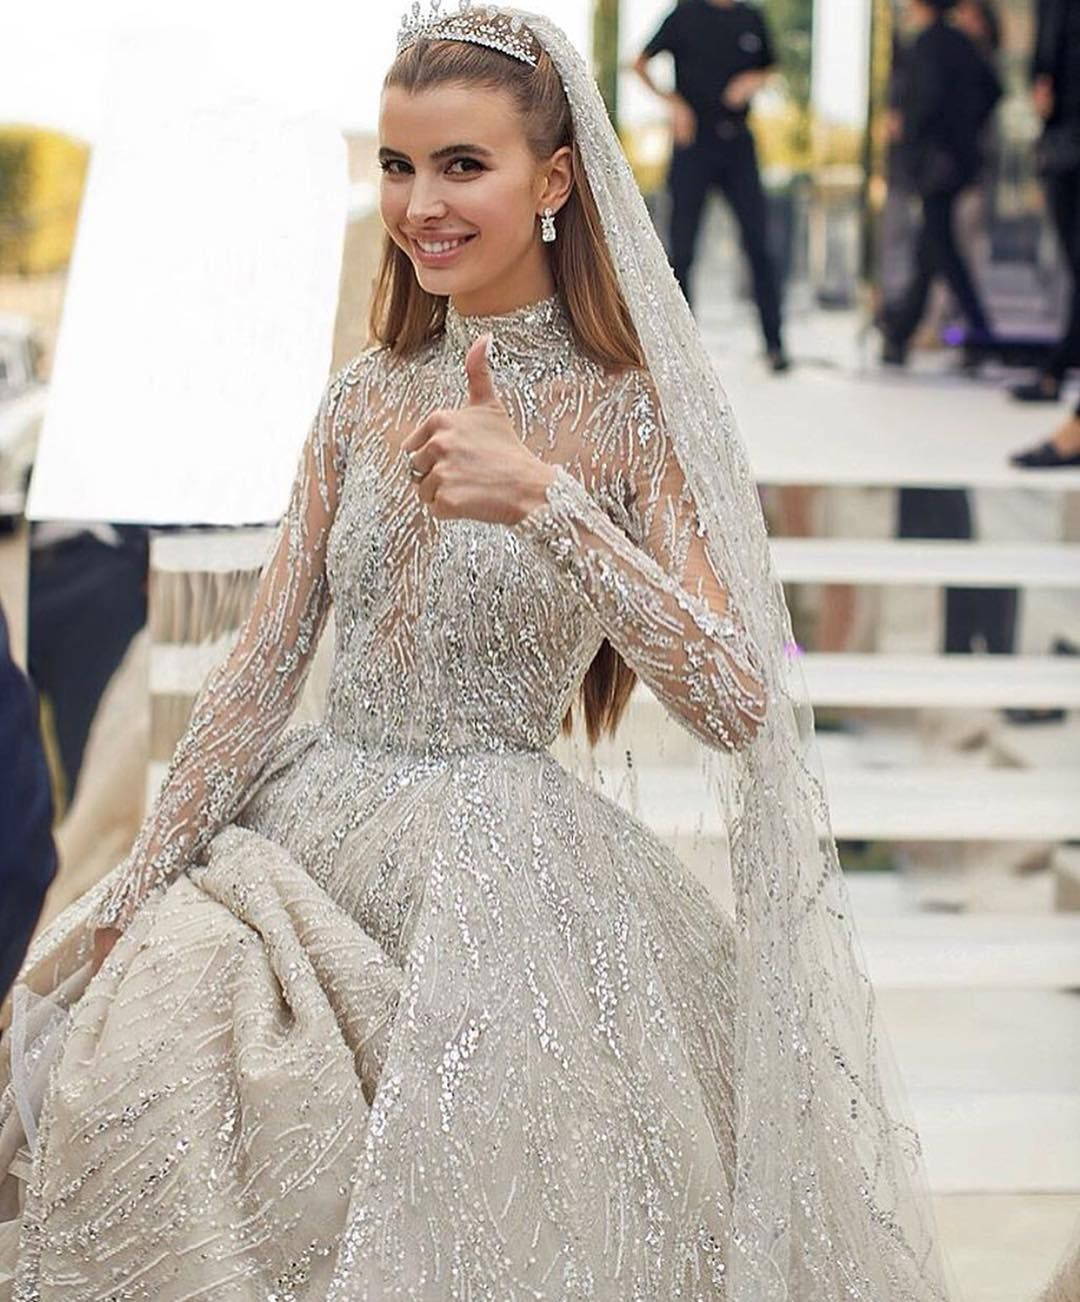 Zuhair Murad Official On Instagram Here S To A Fun Filled Fashionable And Glamorous Mar Wedding Dresses Wedding Dresses Zuhair Murad Ball Gown Wedding Dress [ jpg ]